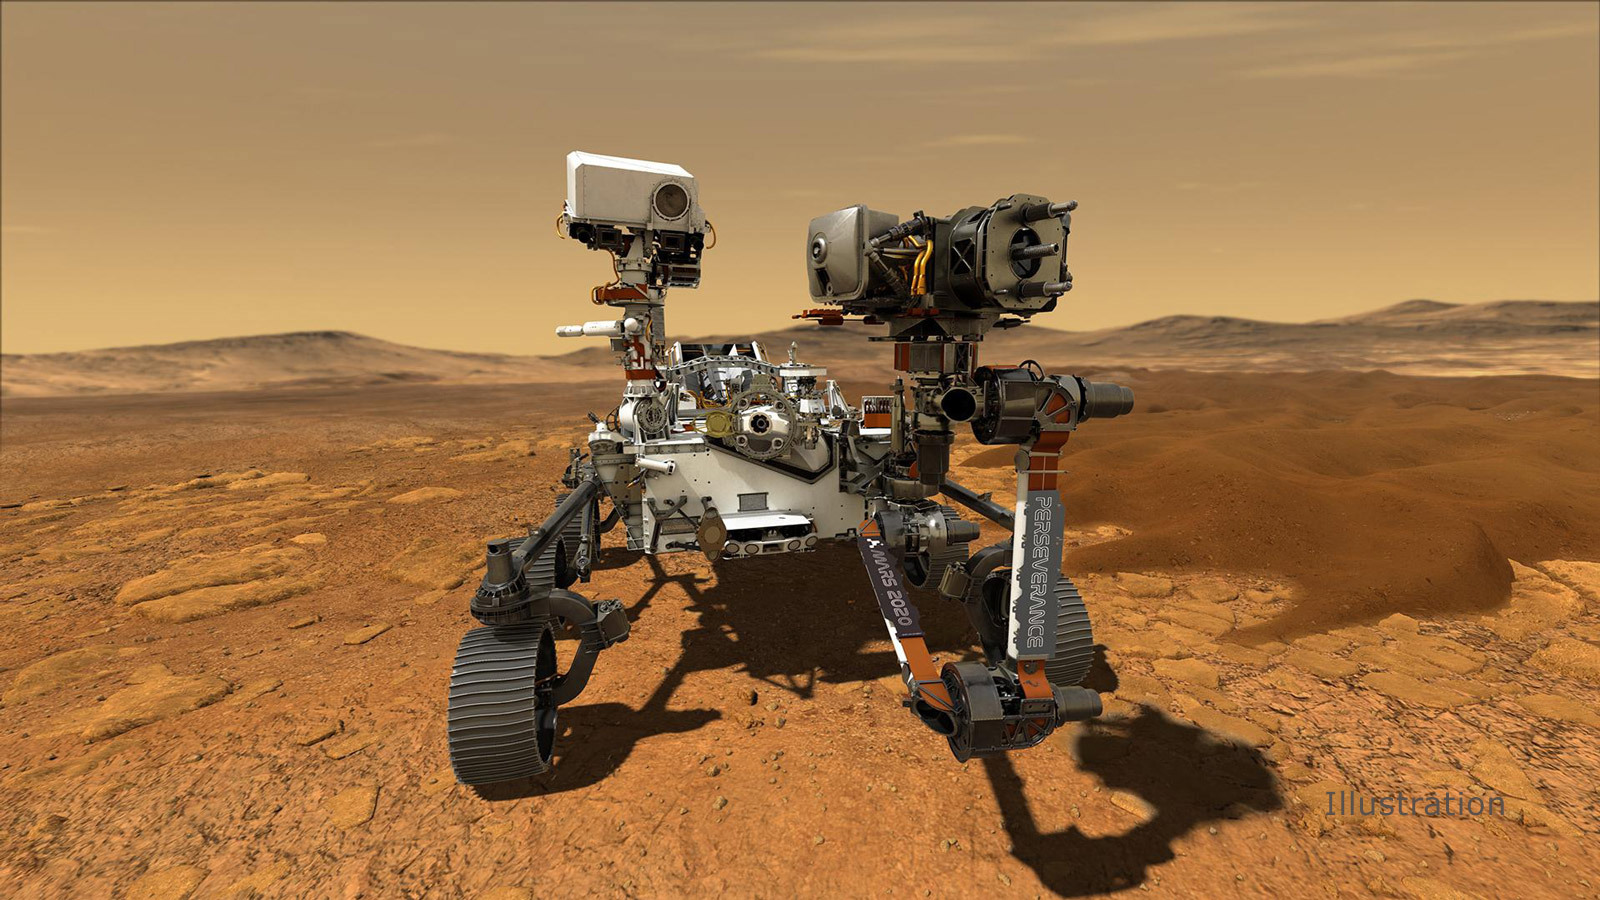 Read article: 7 Things to Know About the Mars 2020 Perseverance Rover Mission